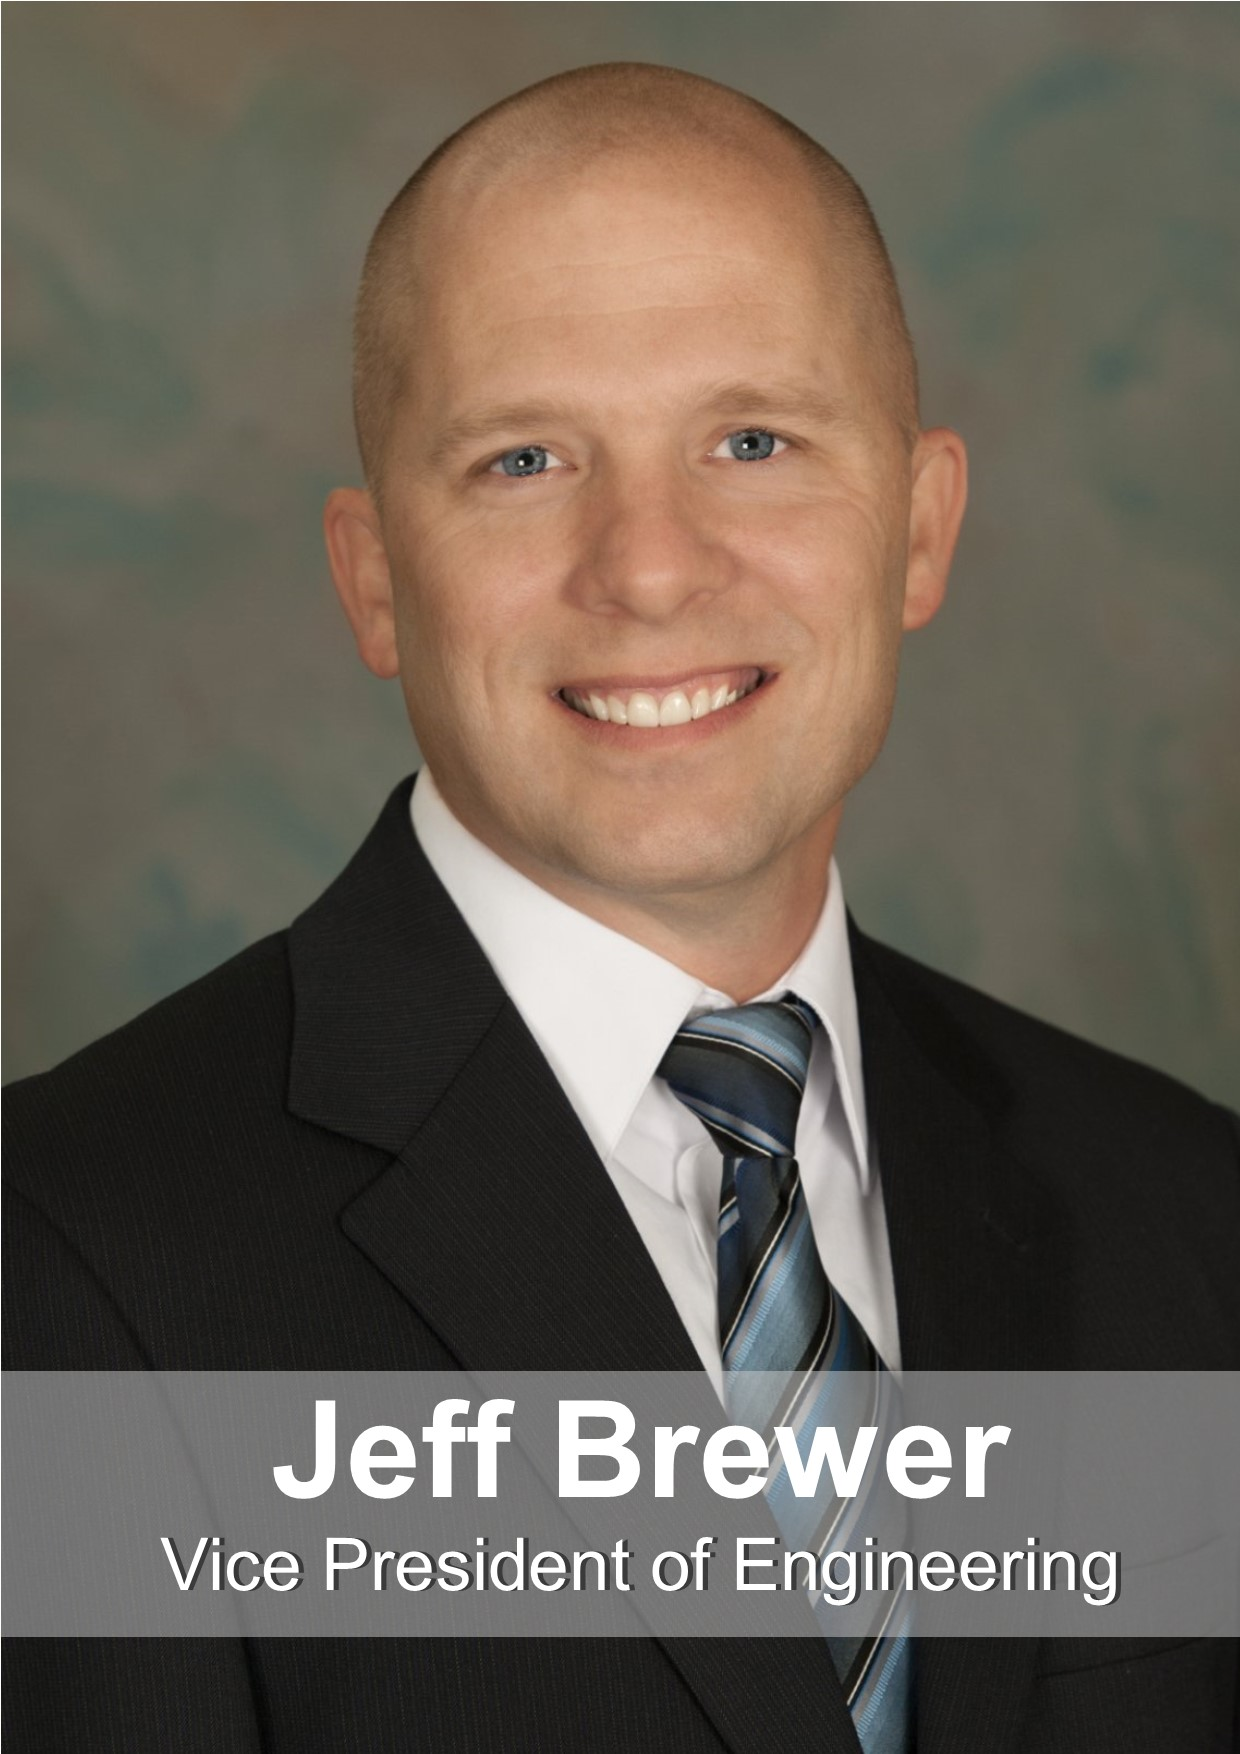 Jeff Brewer - Manager of Engineering